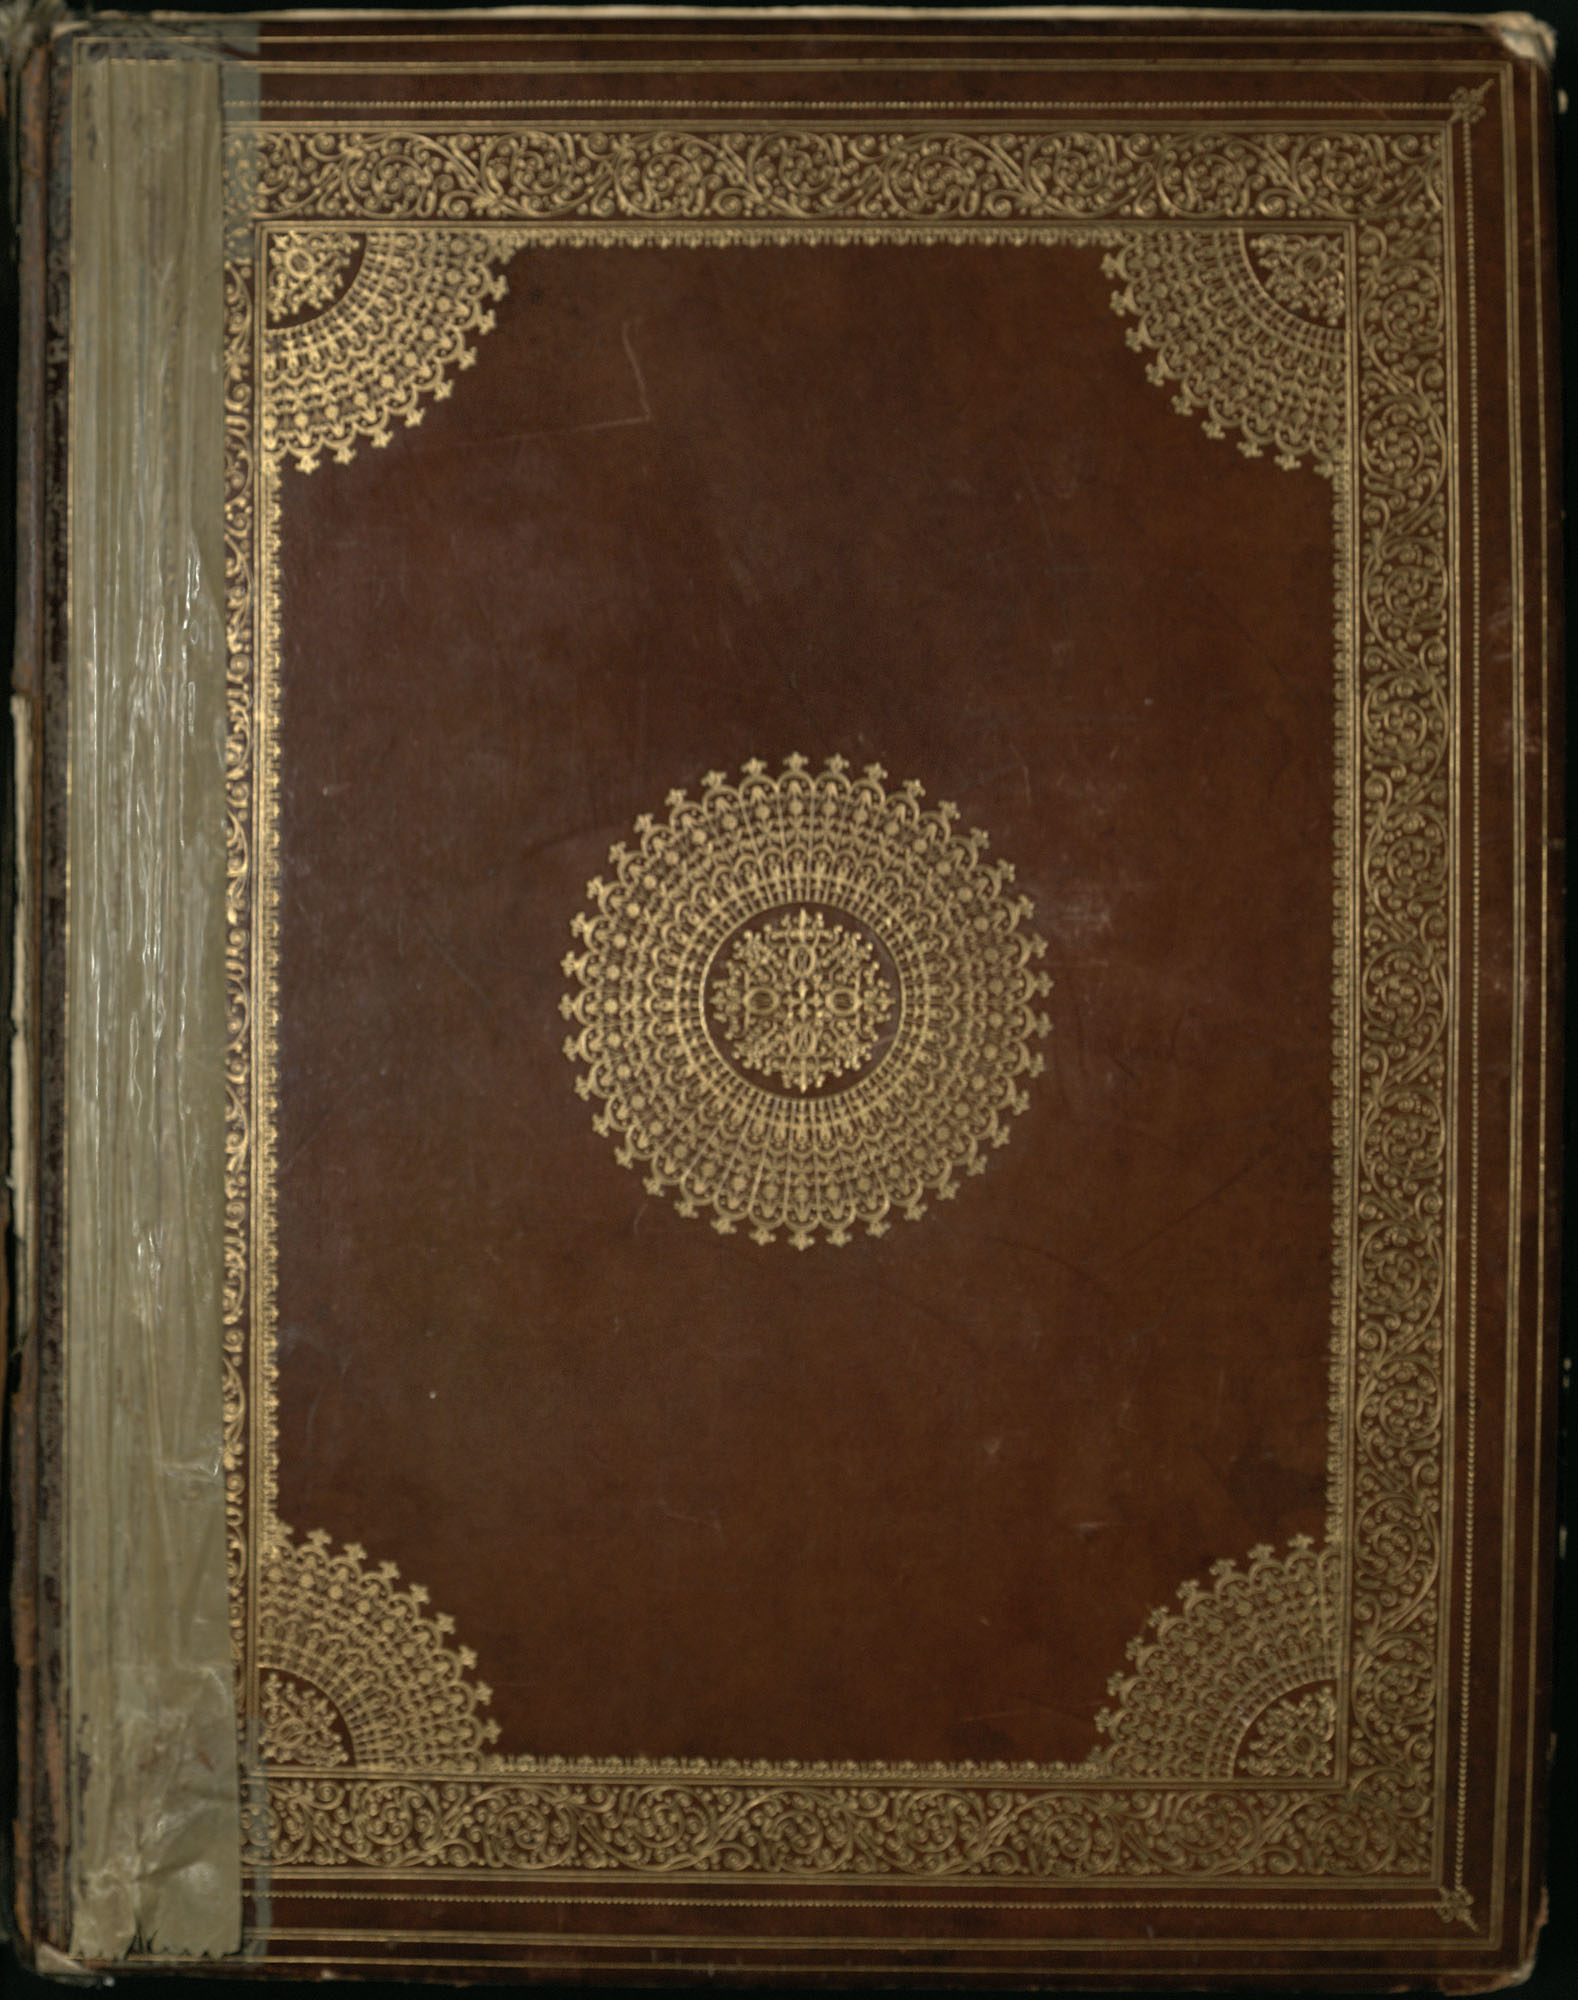 Early Medway and travels album, 1929-1937